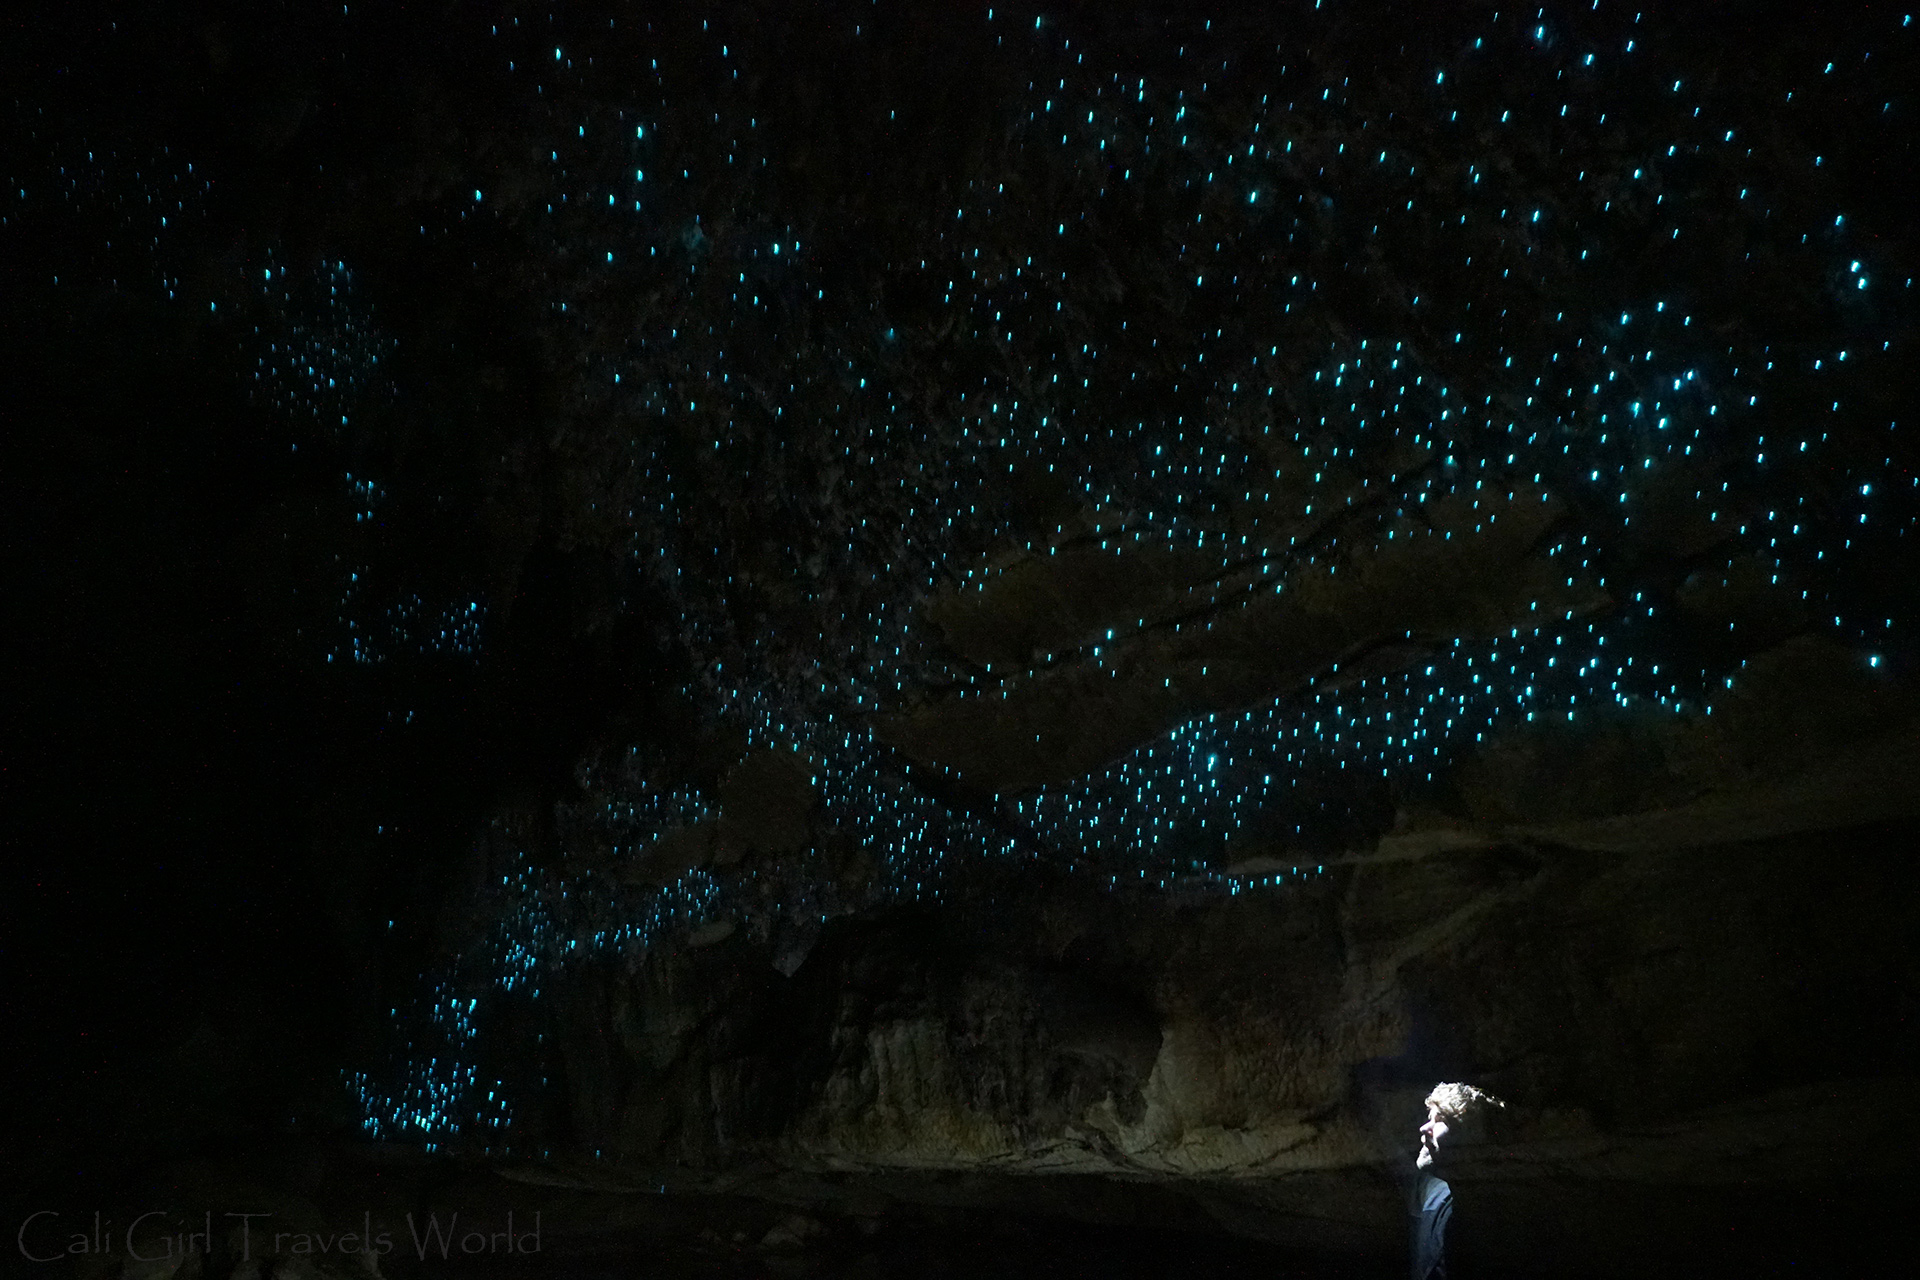 My husband Kevin looking up at the blue glow worms in a cave in Waipu, Whangarei in Northland, North Island.